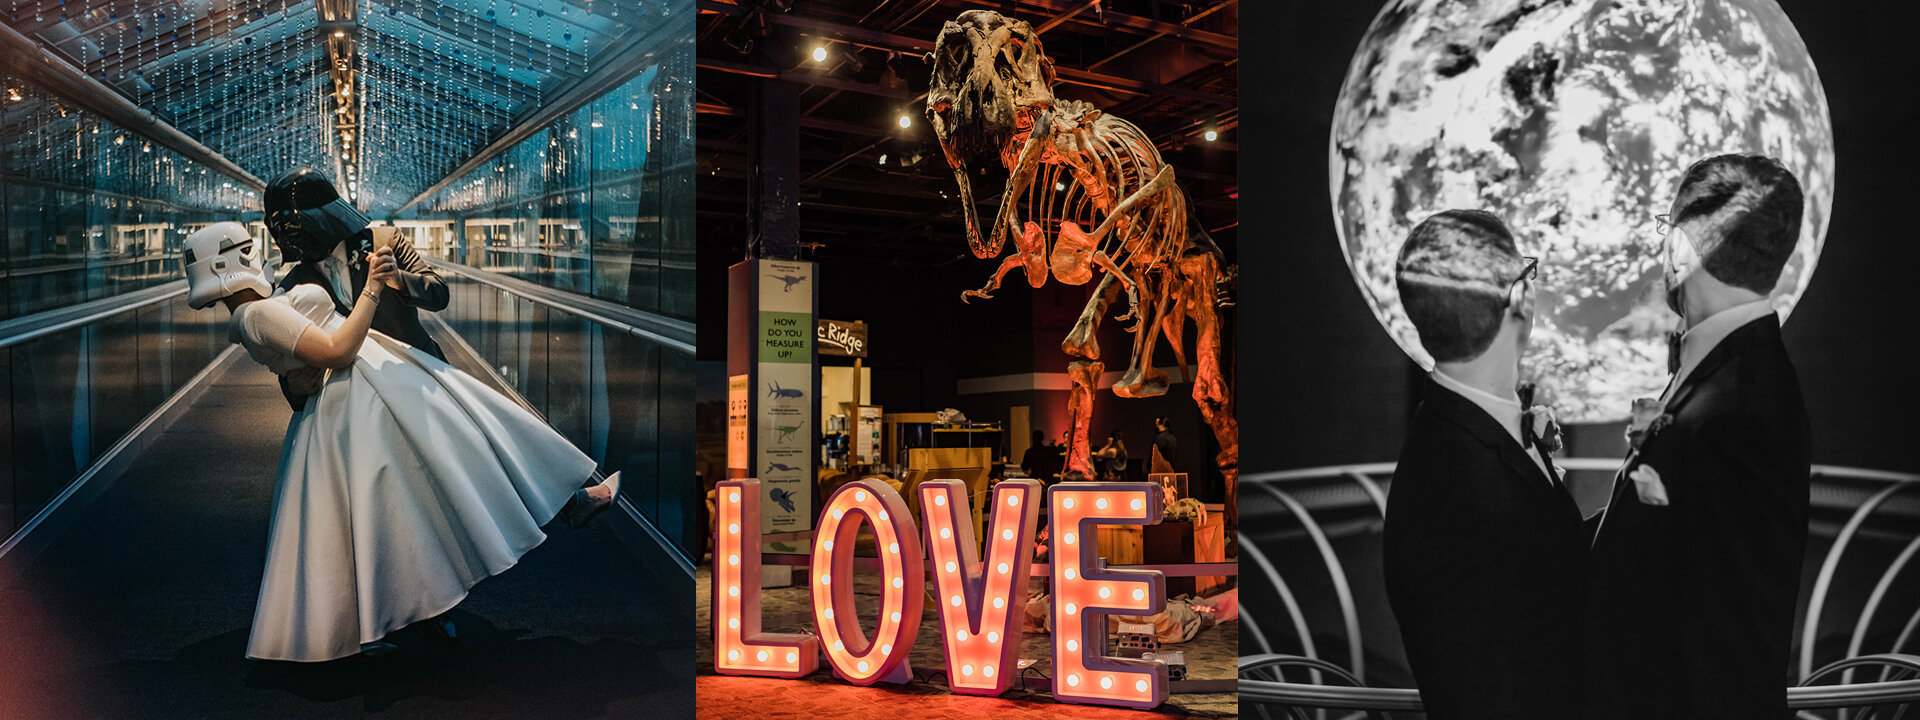 Bride and groom in the entrance tunnel; T-rex skeleton with LOVE sign in lights; couple exchanging vows in front of Science On A Sphere globe